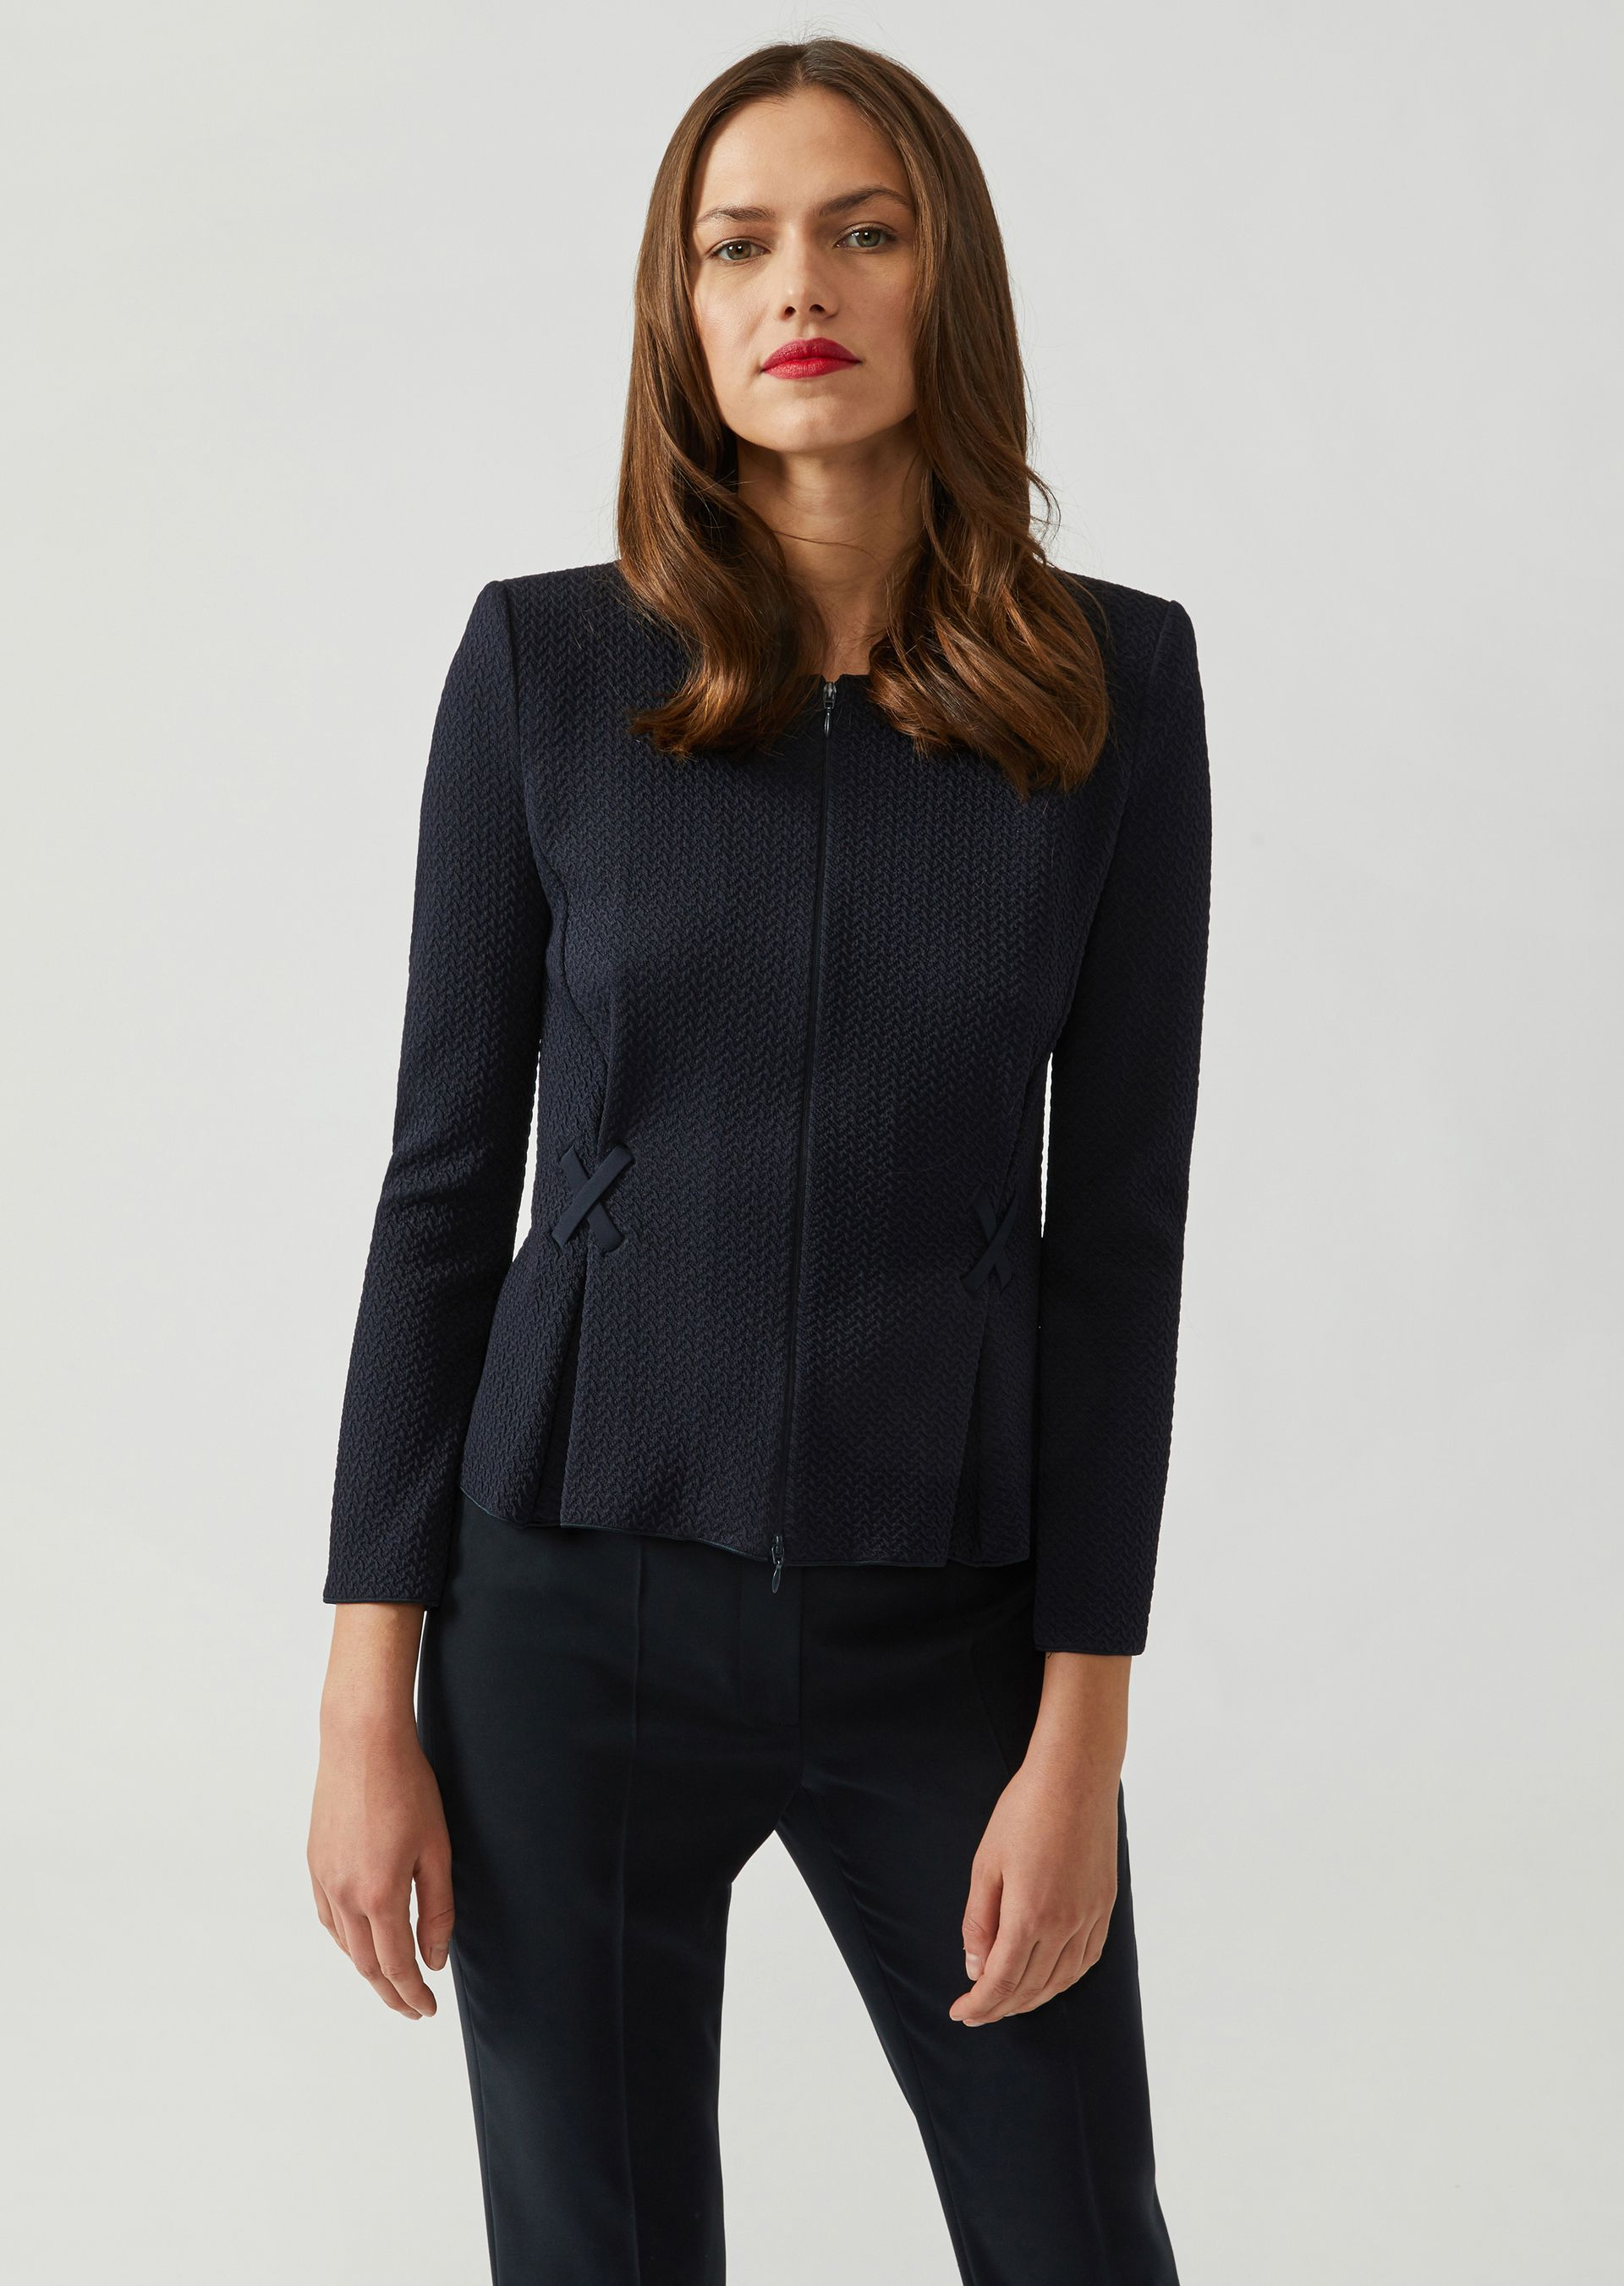 Casual Jackets - Item 41842587, Navy Blue from ARMANI.COM